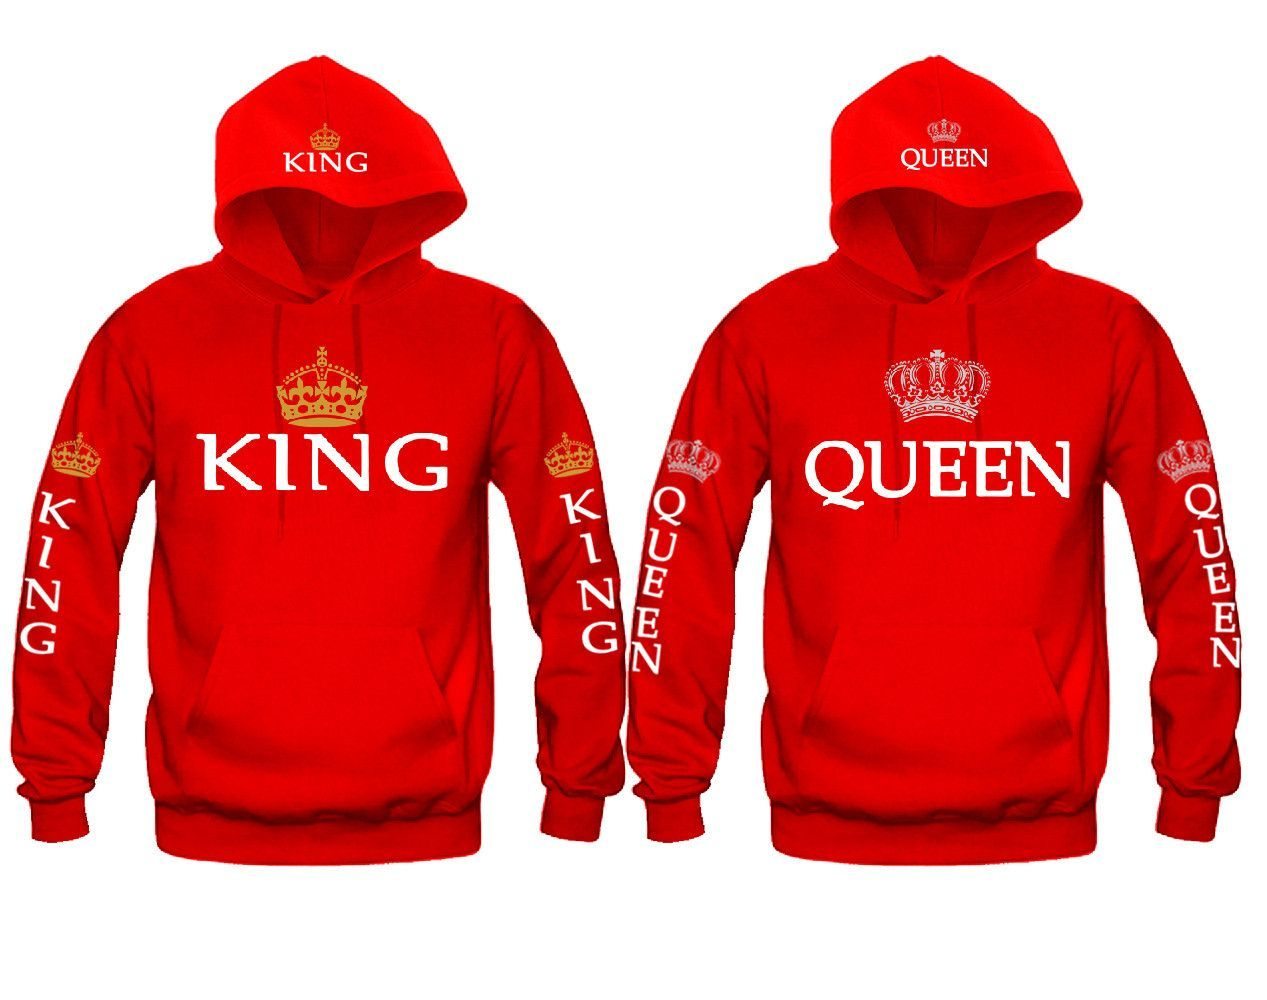 767f6d566ac21d King and Queen Silver and Gold Crowns FULLY LOADED - Sleeves and Hood  Prints Unisex Couple Matching Hoodies